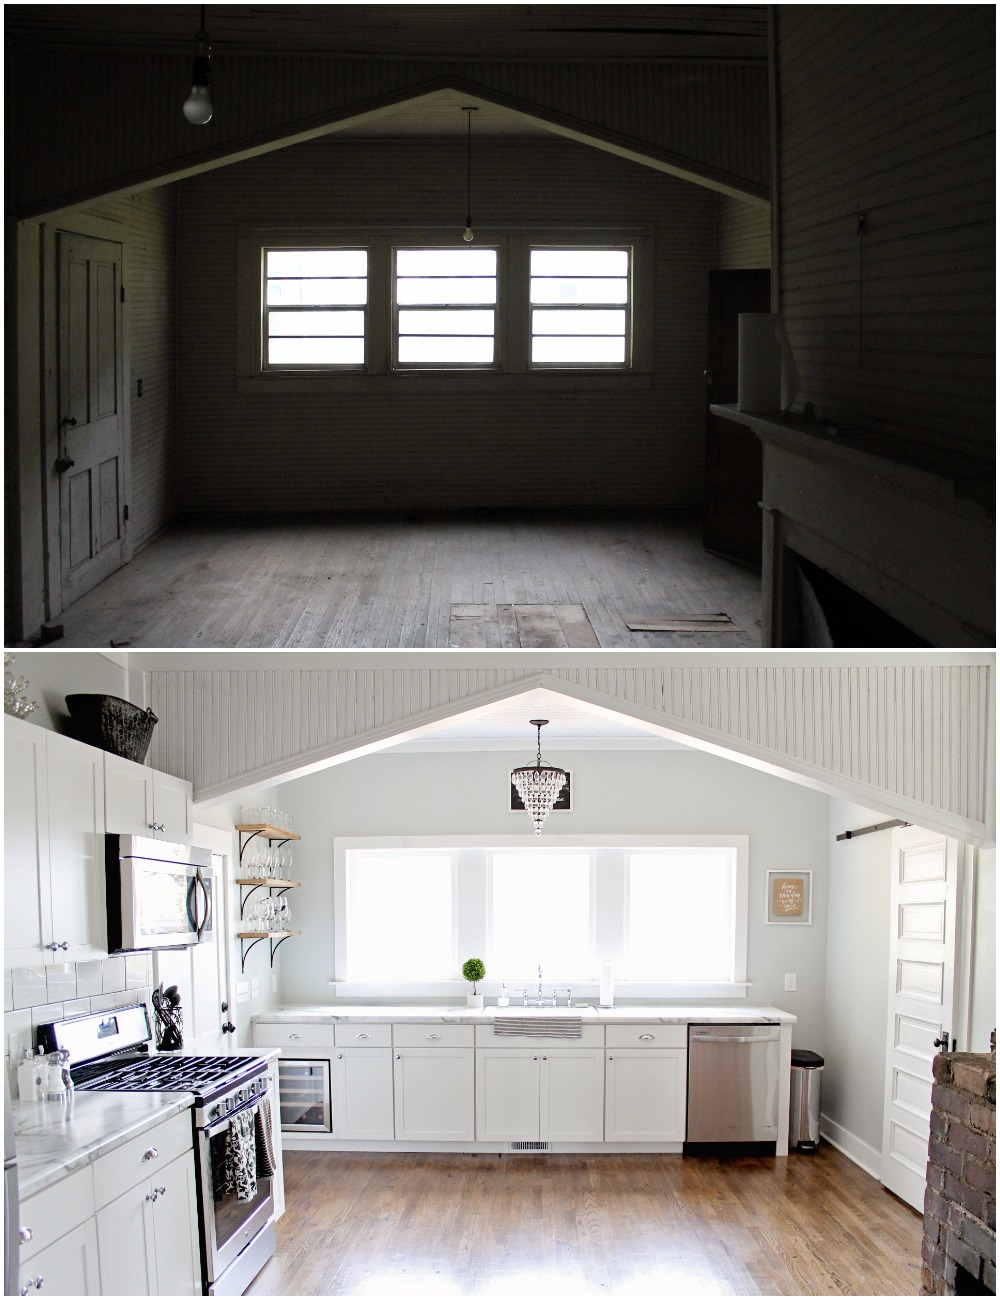 Elizabeth Burns Design | Old farmhouse fixer upper kitchen renovation - white shaker cabinets and marble countertops on a $5000 remodel budget